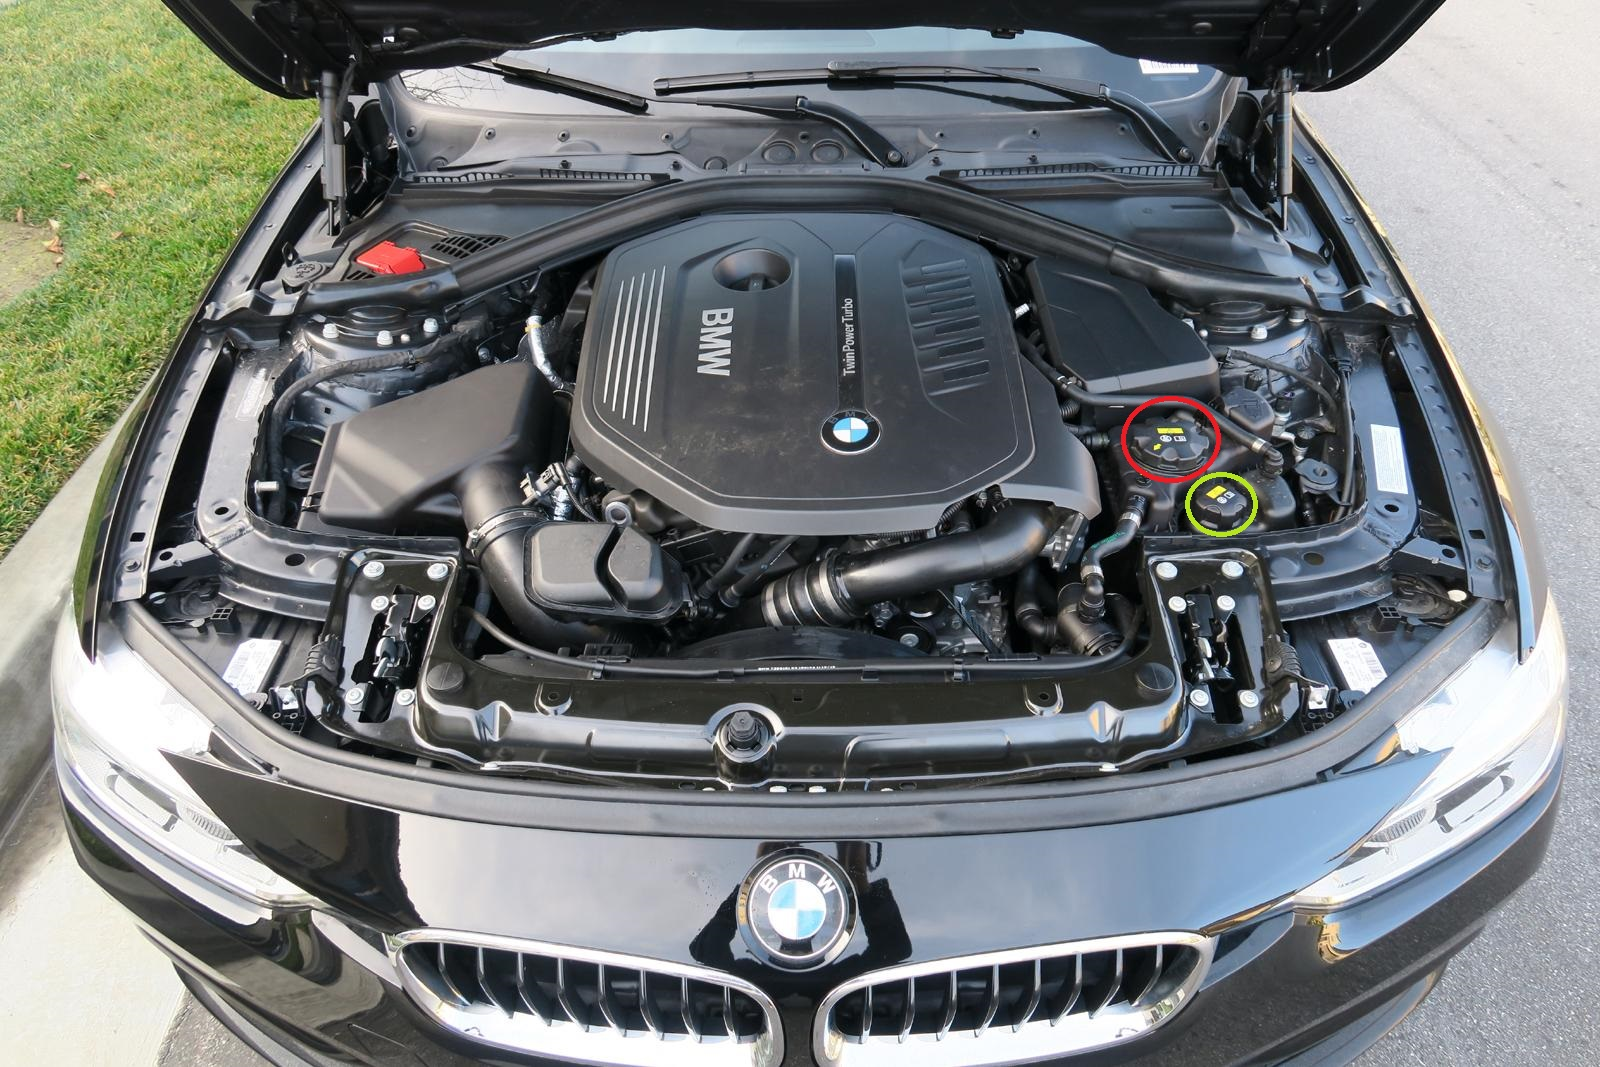 2006 Bmw 325xi Engine Diagram Wiring Library Overview Of Parts Coolant Resevoir In B58 340i 325i